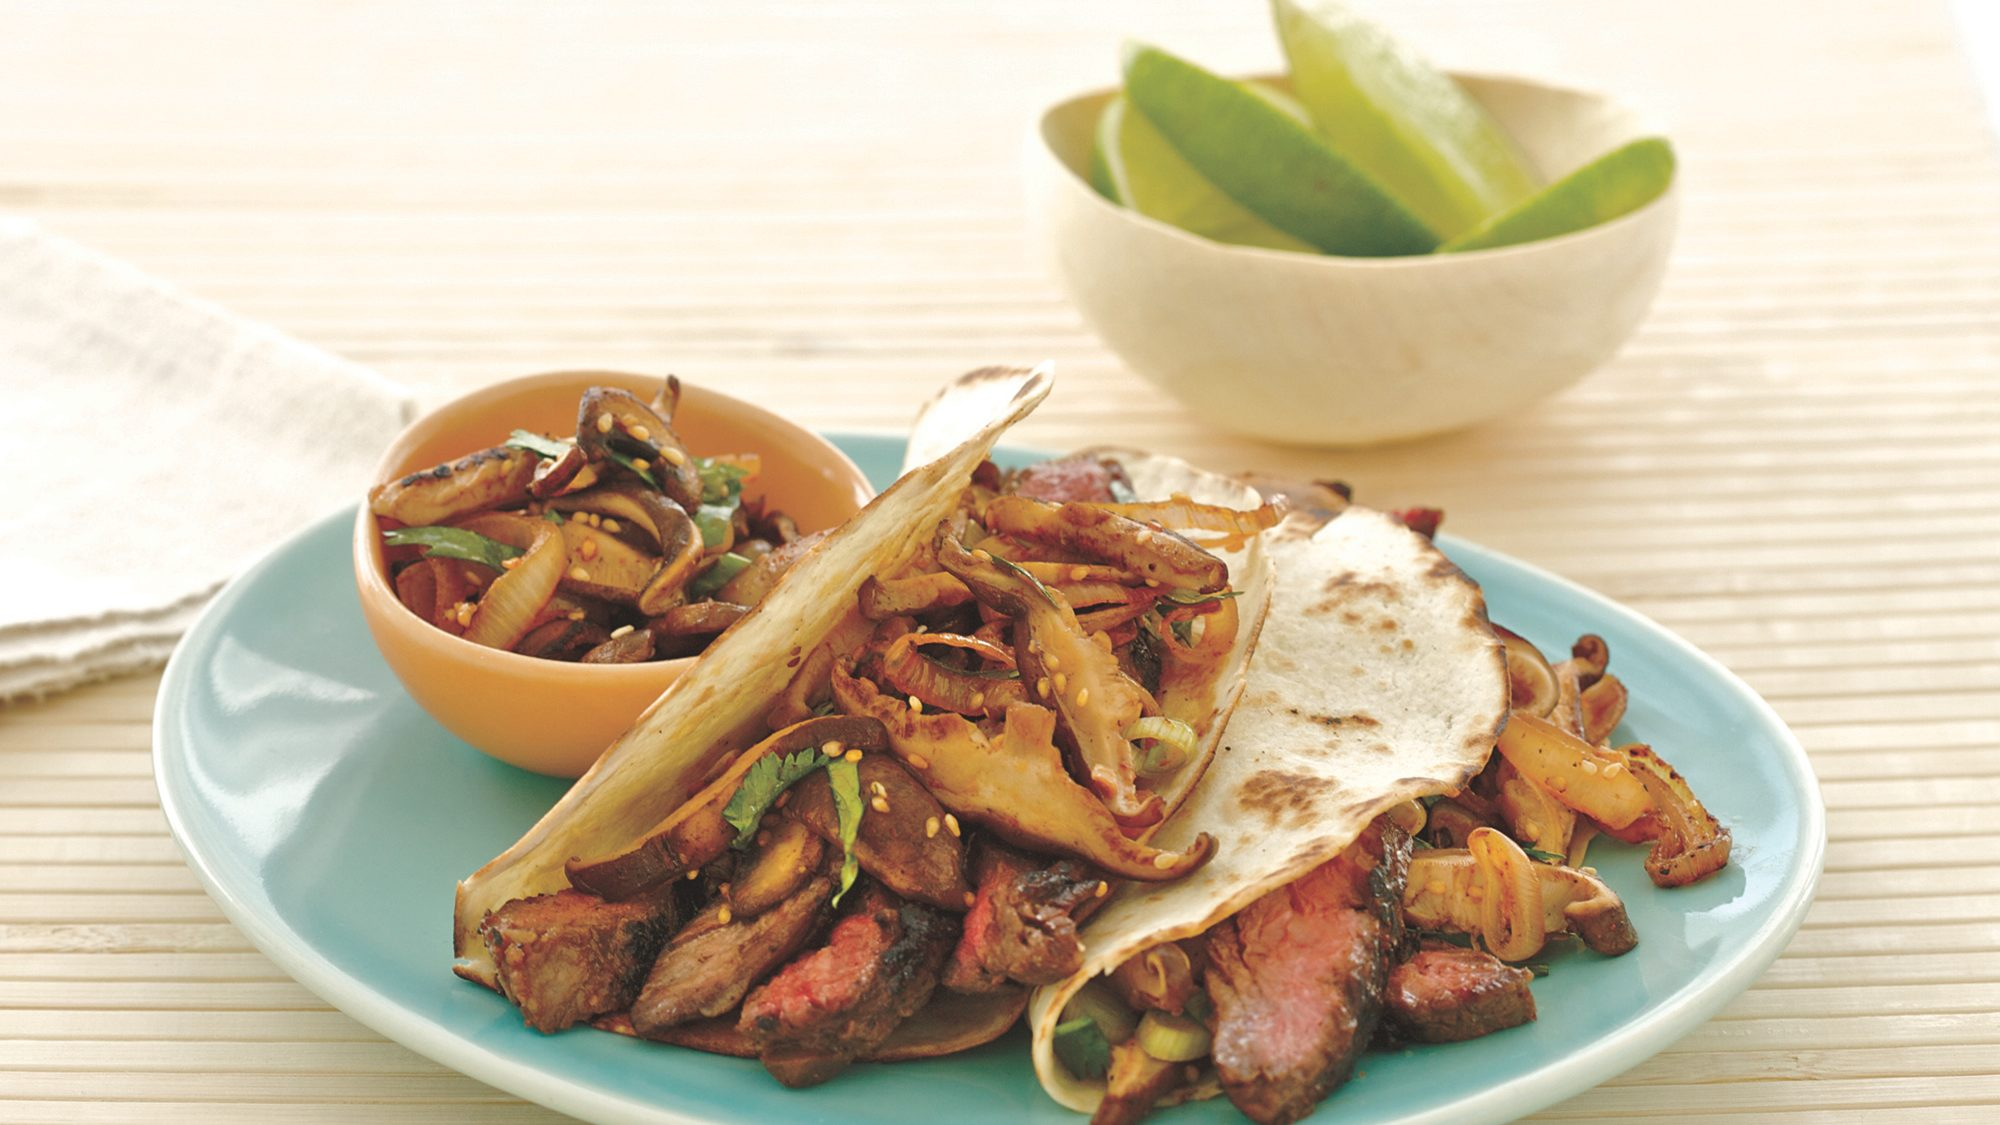 asian-steak-tacos-with-spicy-mushroom-salsa.jpg